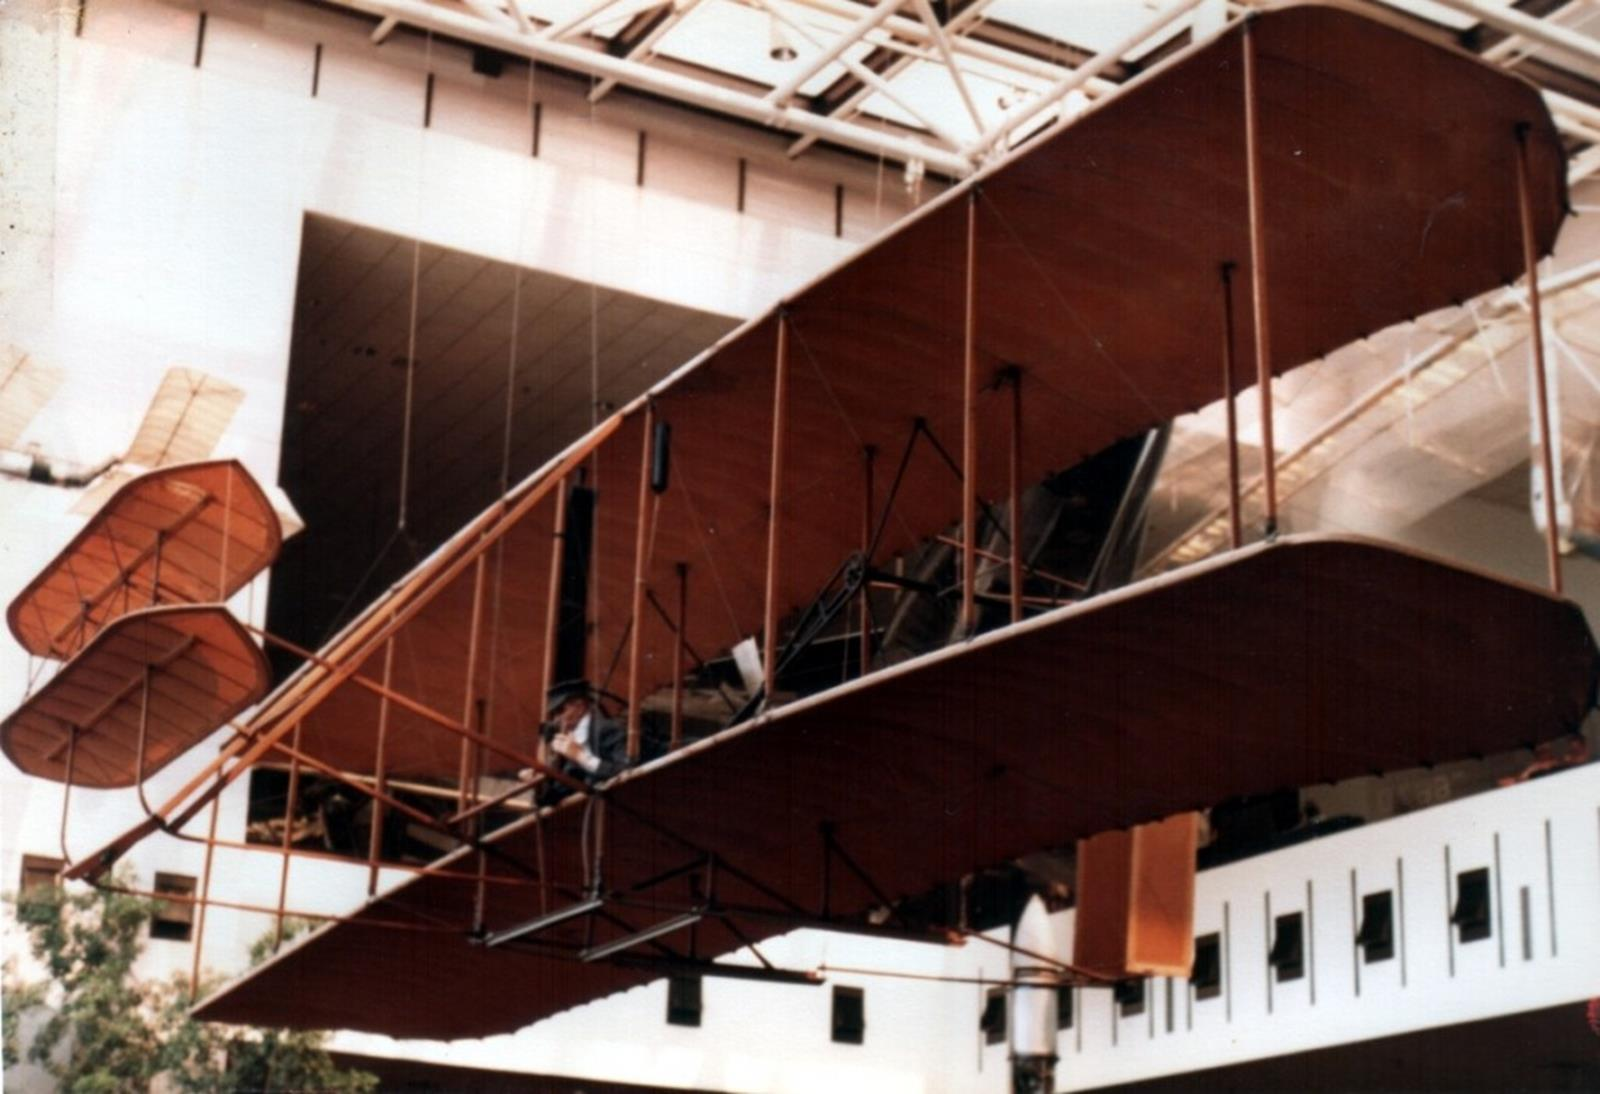 Wright Flyer at the Smithsonian